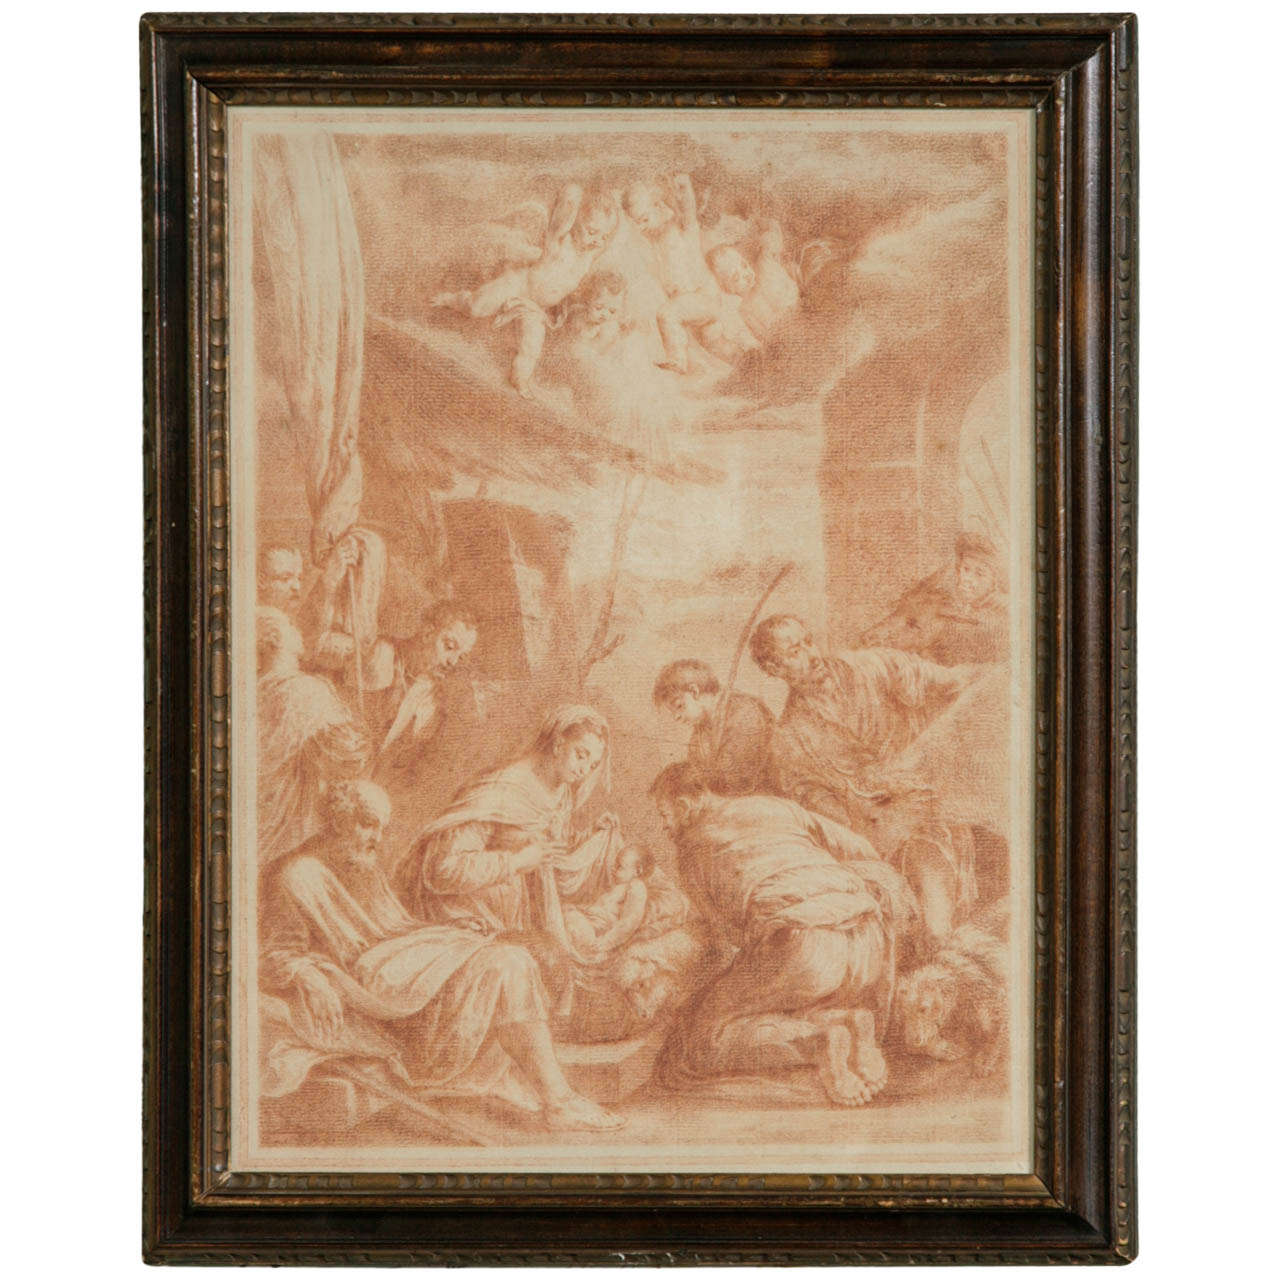 18th Century Italian Red Chalk Drawing 'Adoration of the Shepherds'